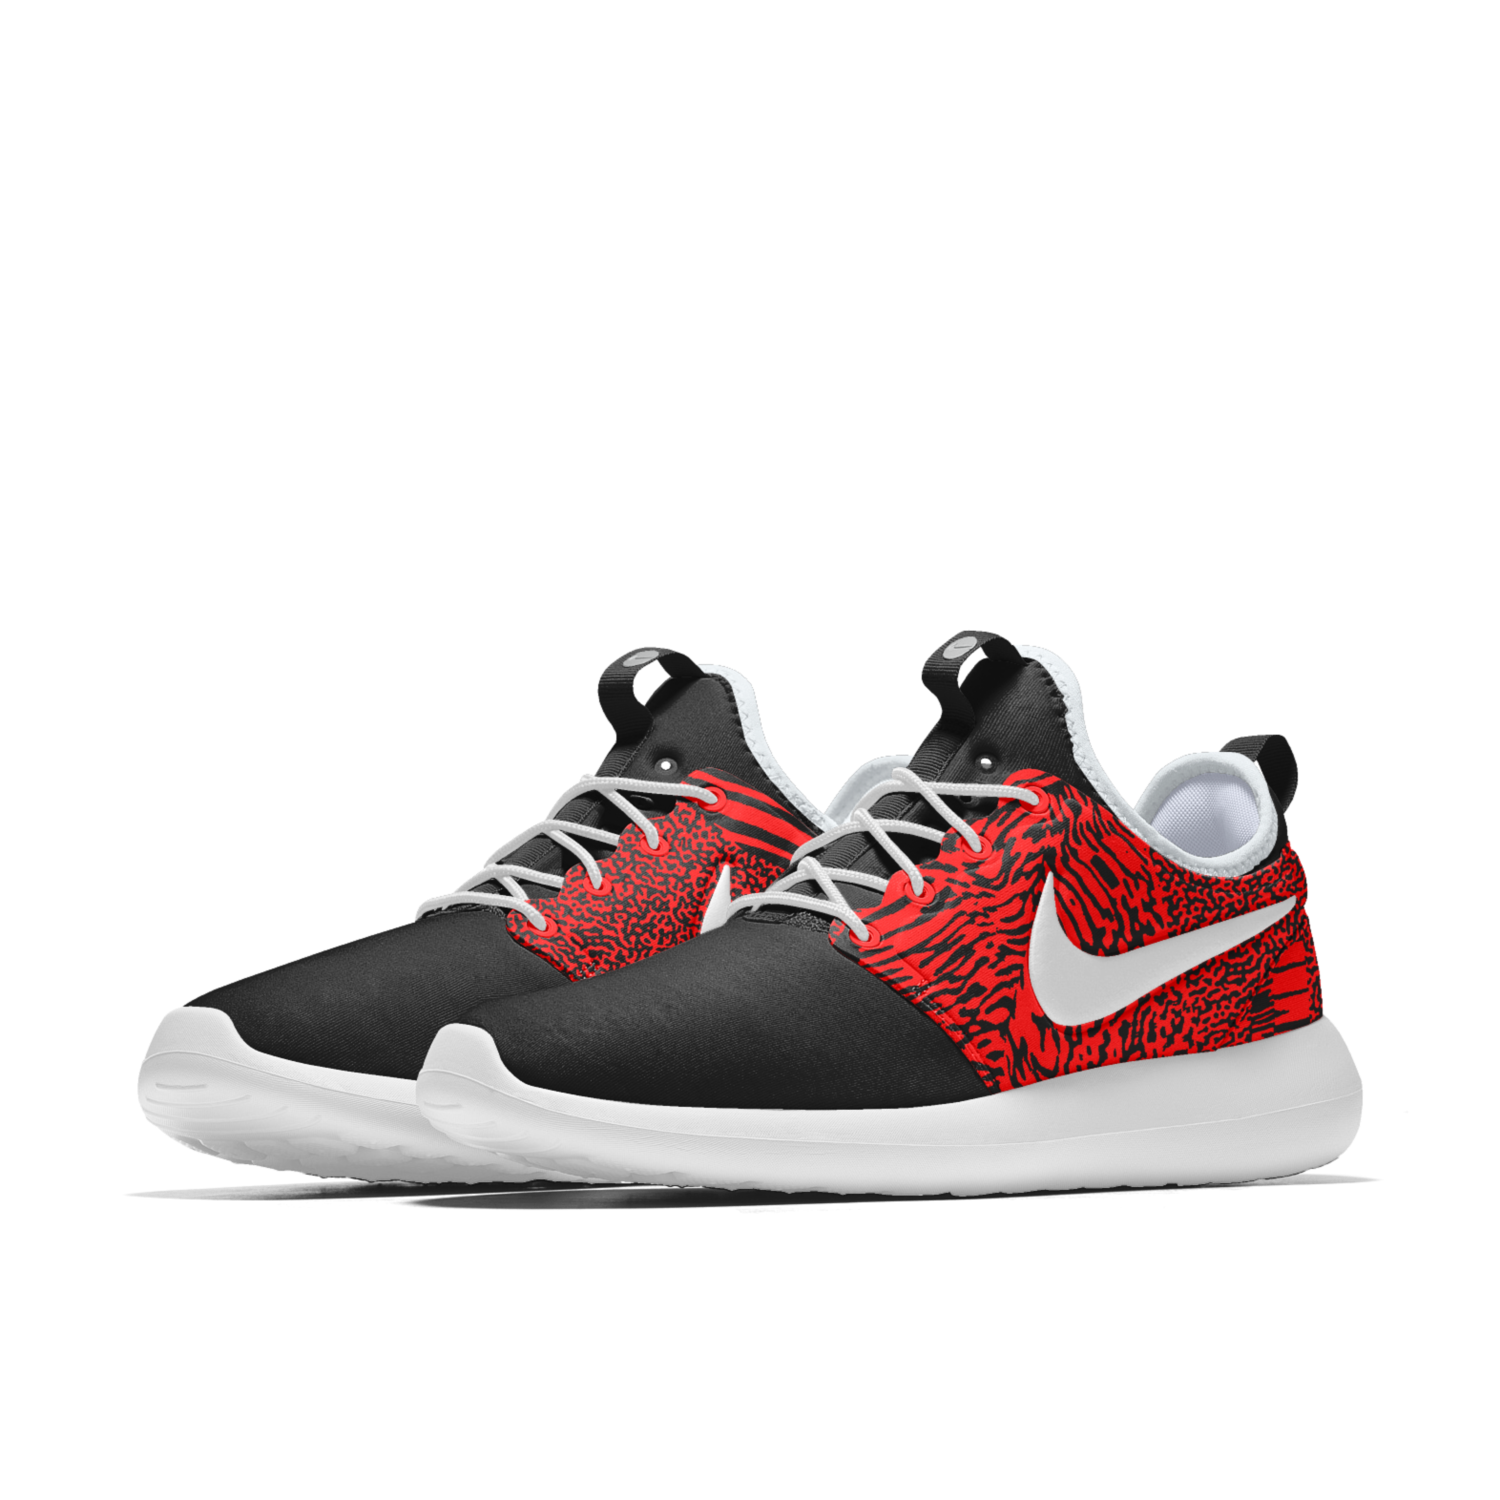 best sneakers 5187d df090 Nike Roshe Two iD Nike Shoes Cheap, Nike Shoes Outlet, Nike Free Shoes,